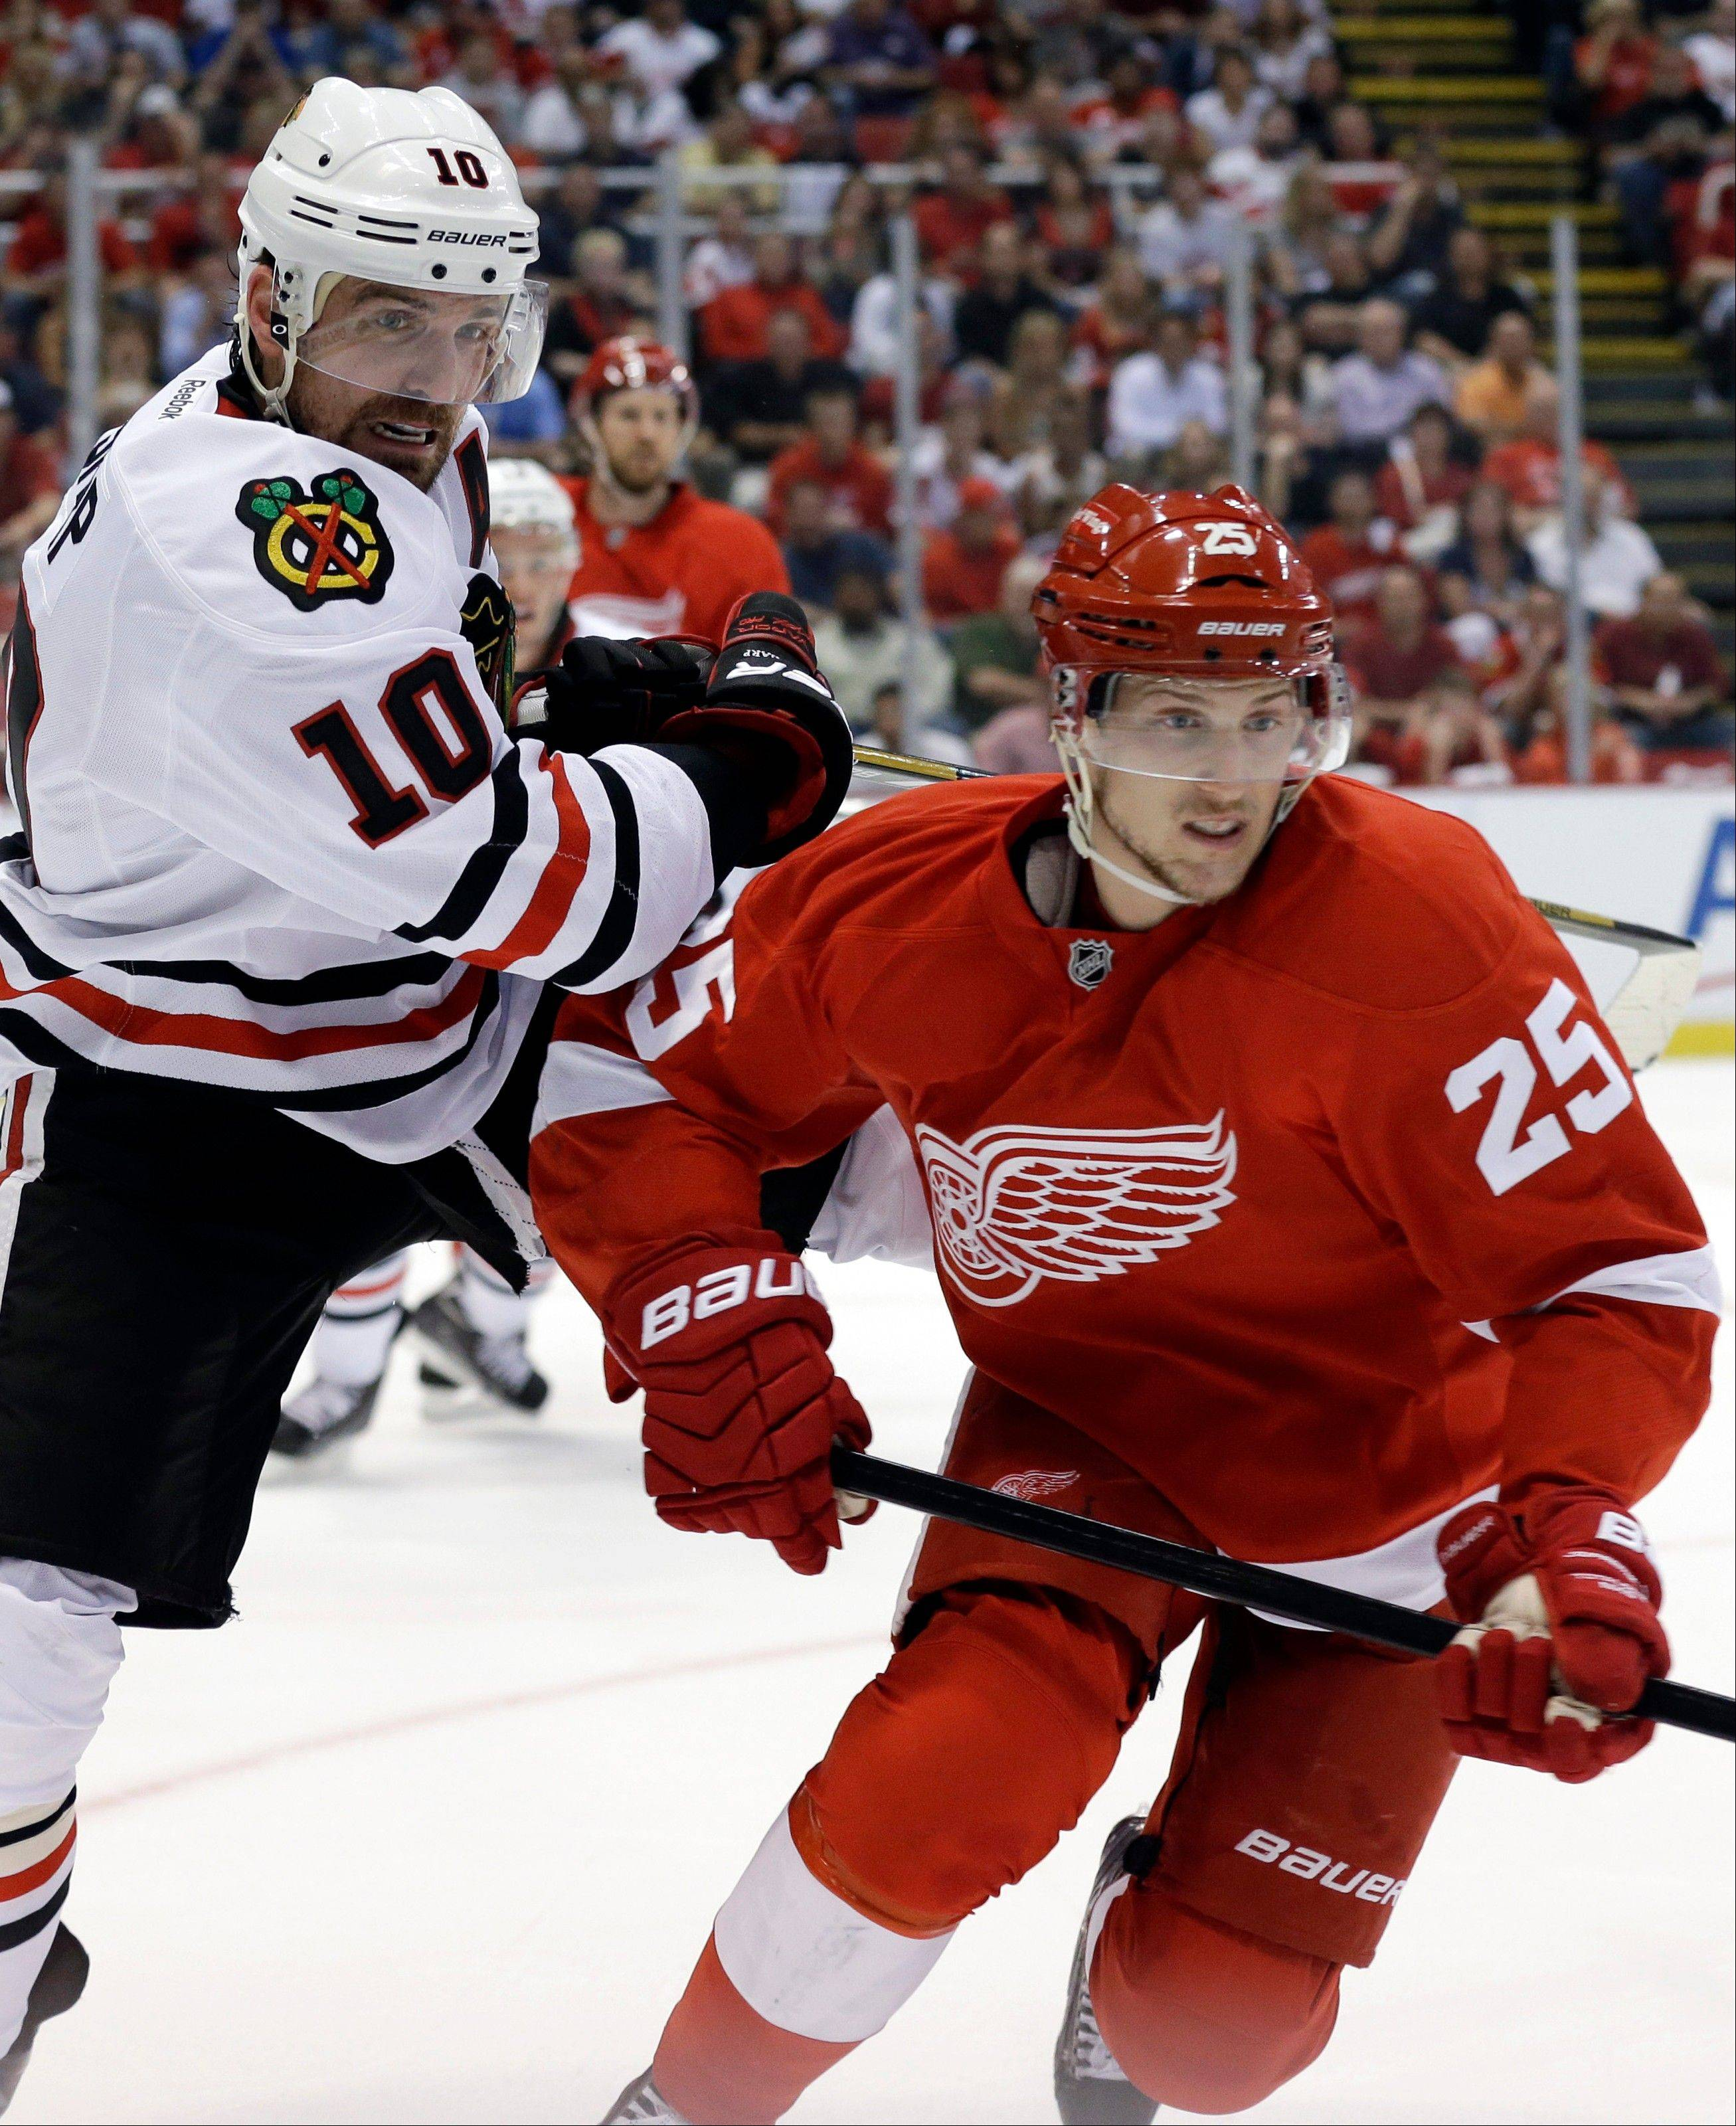 Blackhawks winger Patrick Sharp, here battling Detroit center Cory Emmerton for the puck in Game 3, says every playoff game is huge. But Game 4 in this series is even bigger than most.